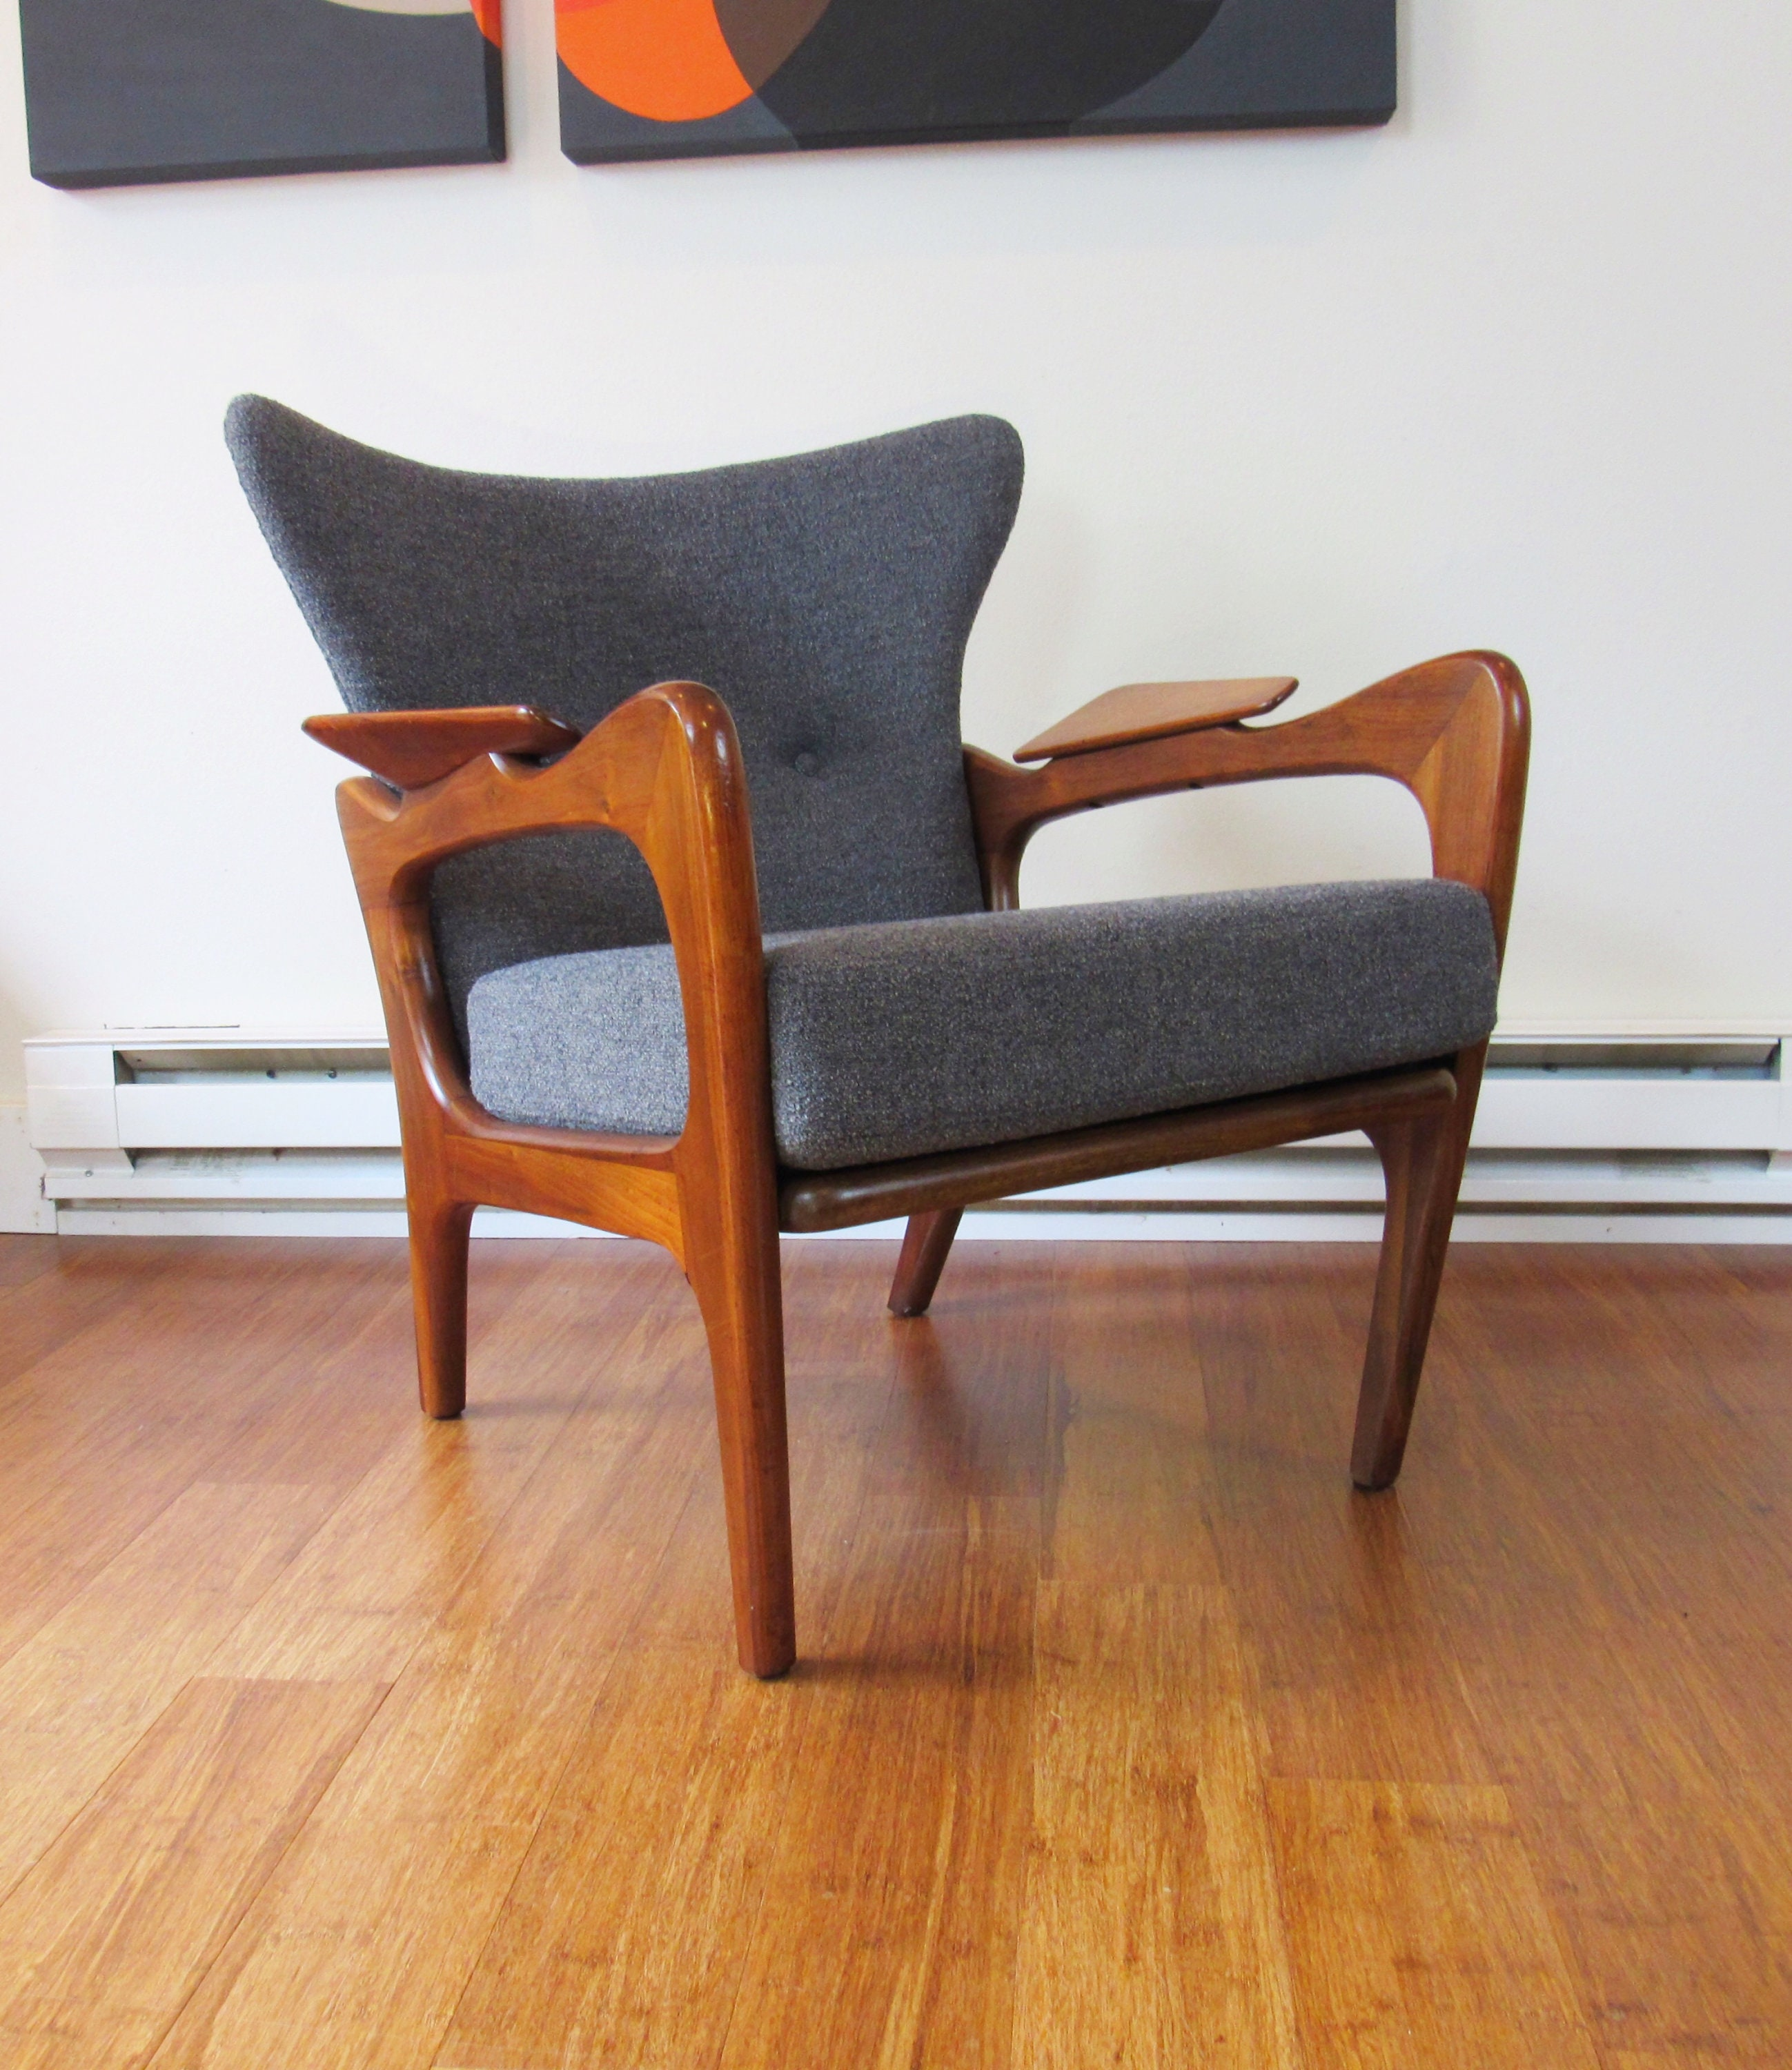 Newly Restored Wingback Lounge Chair By Adrian Pearsall For Craft  Associates (model 2291 C)